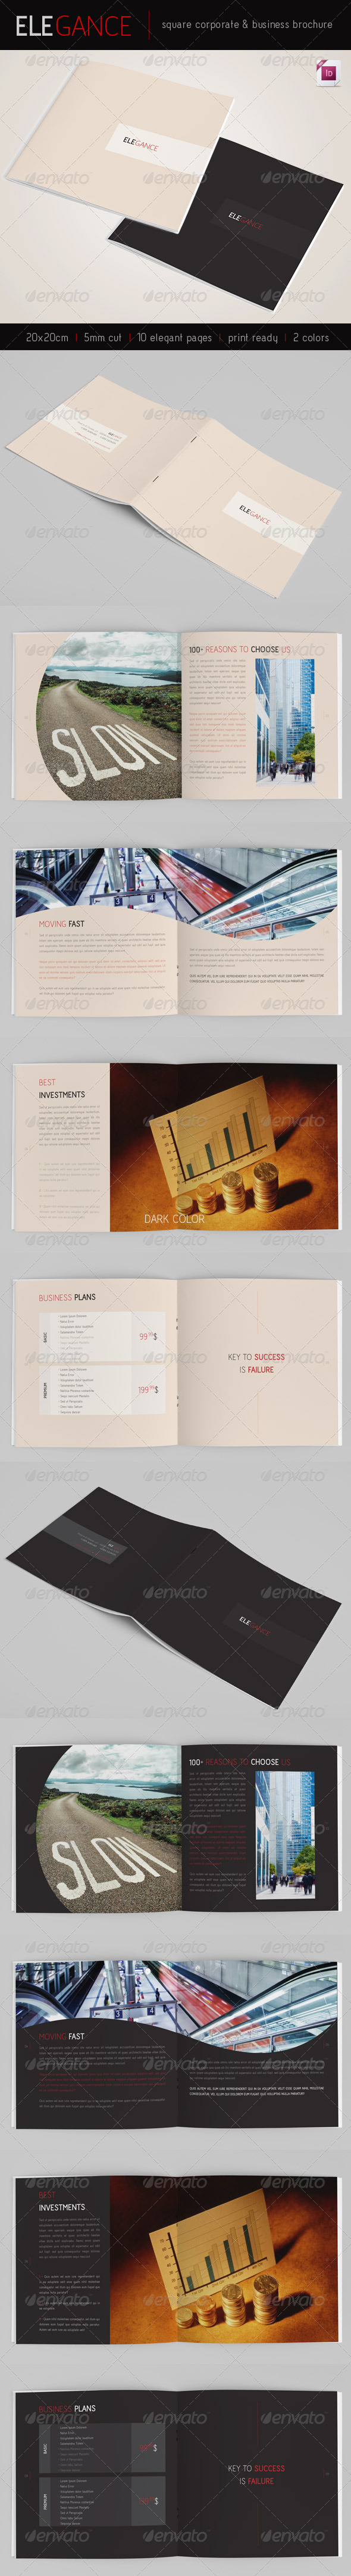 Elegance | Square 10 pages Brochure | 2 Colors - Corporate Brochures